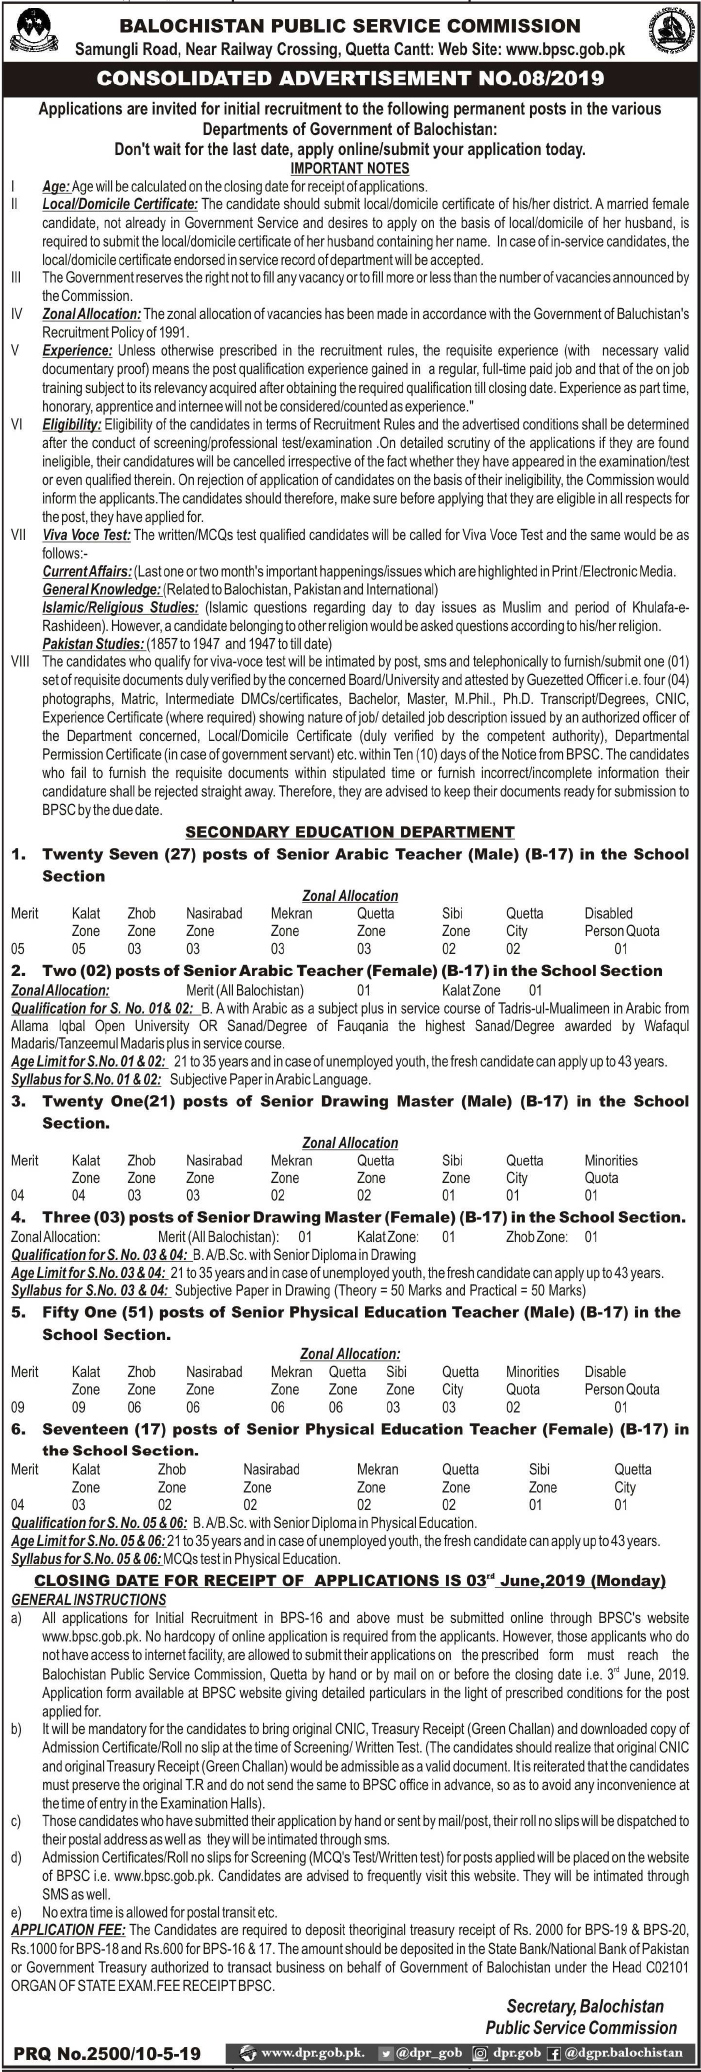 Educators Teachers Jobs in BPSC, Balochistan Public Service Commission